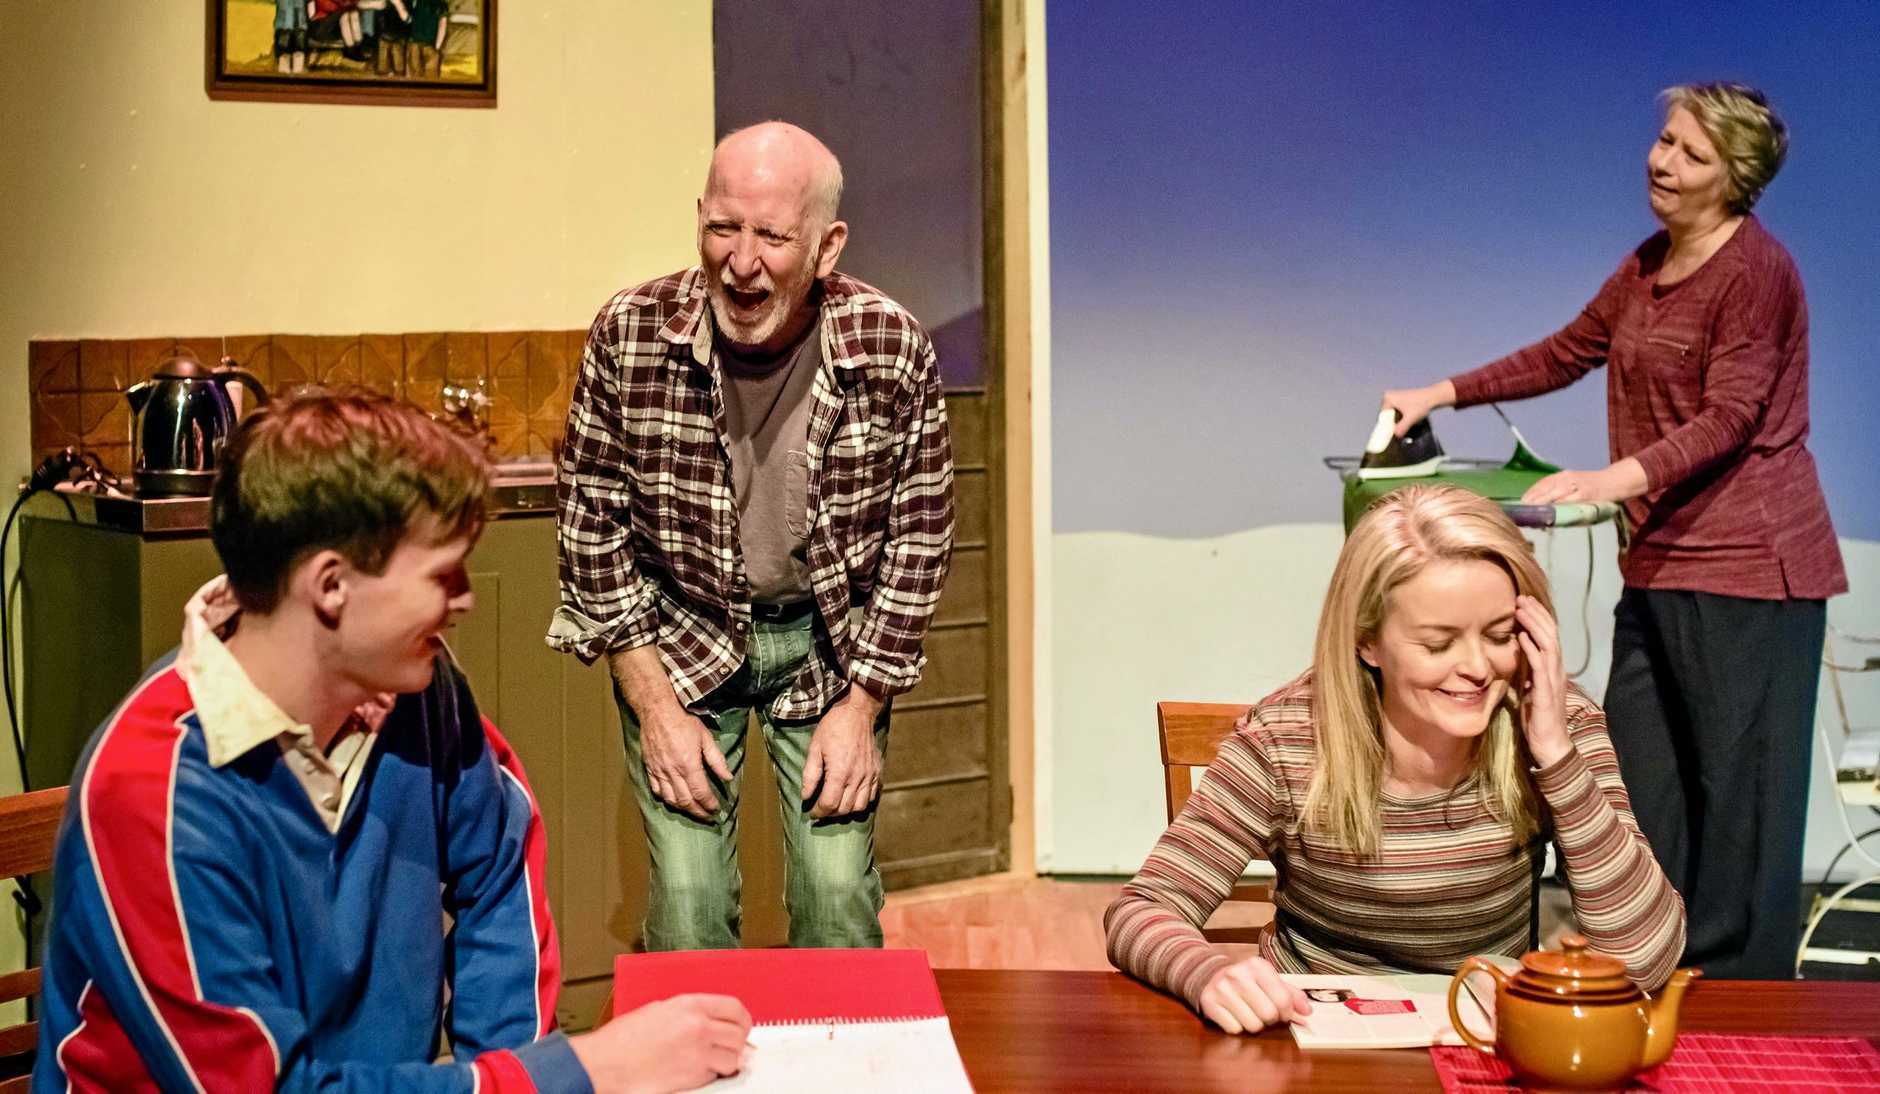 FAMILY CHAOS: Drama, comedy, what more could you want in an Aussie theatre play? Don't miss Hotel Sorrento at the MECC on September 29.